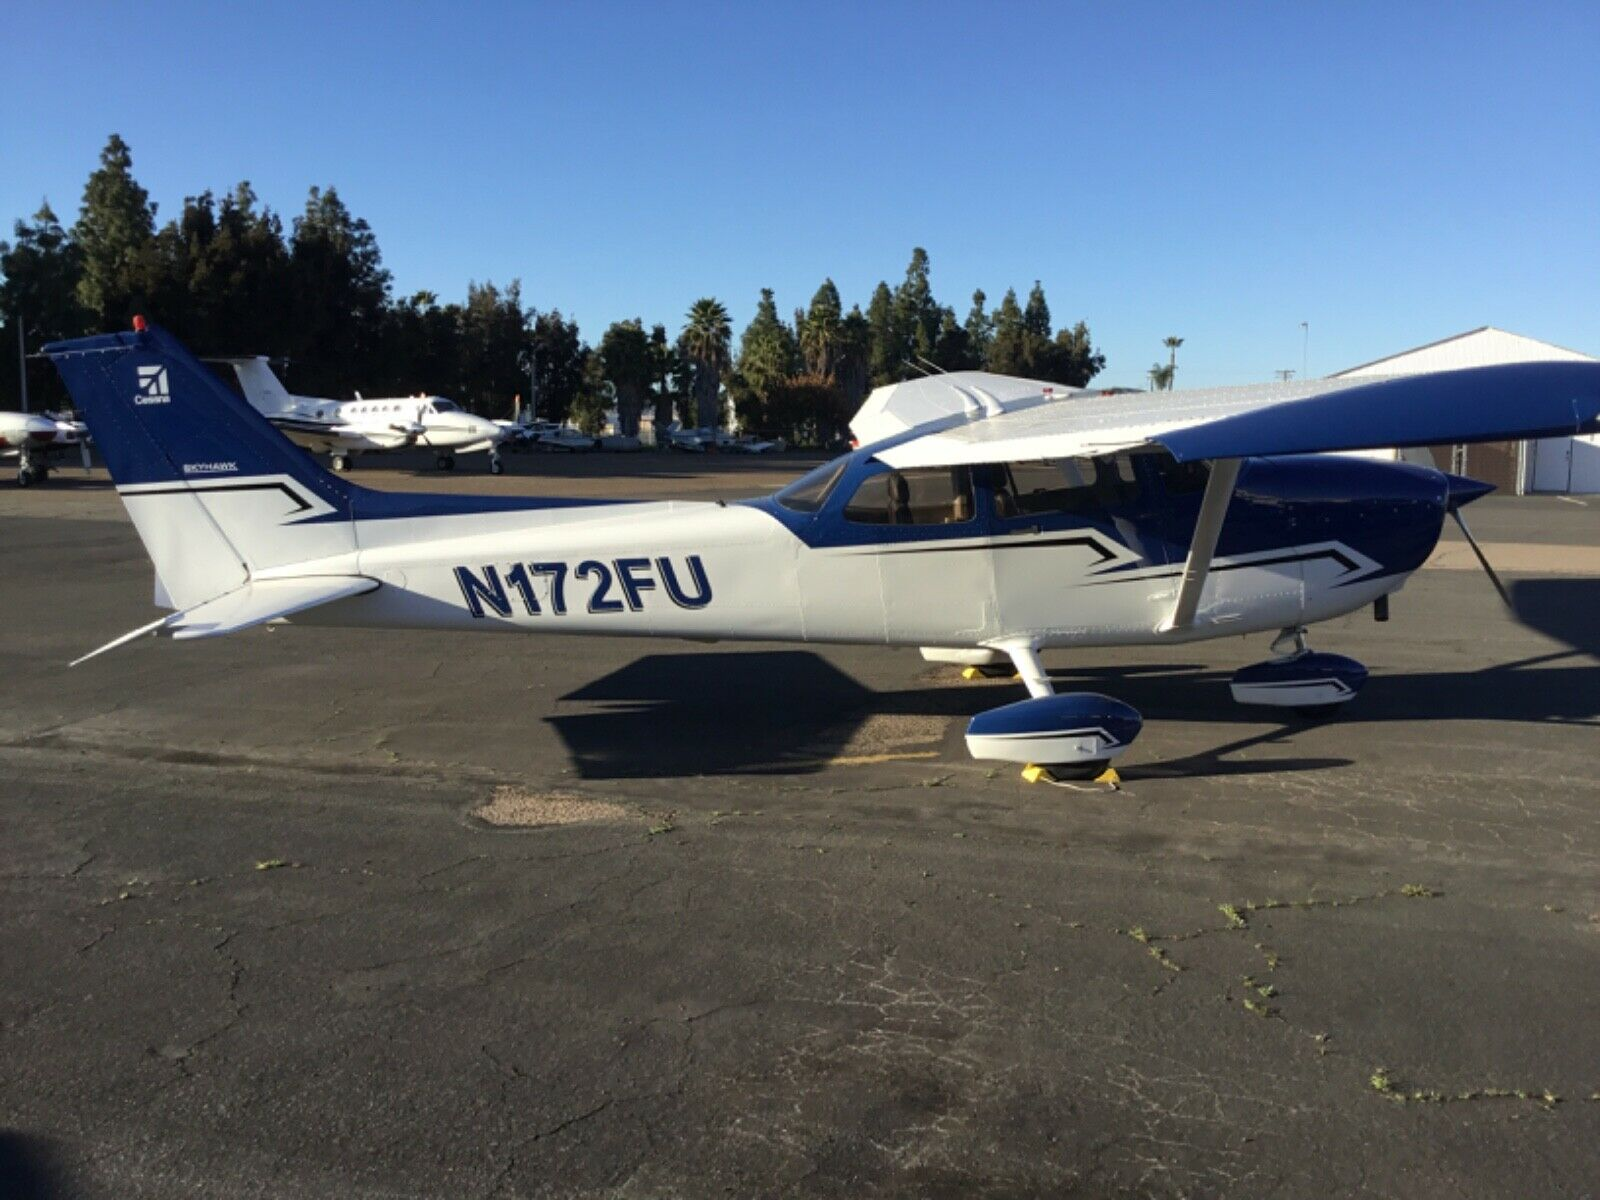 New Paint 2002 Cessna 172r aircraft for sale